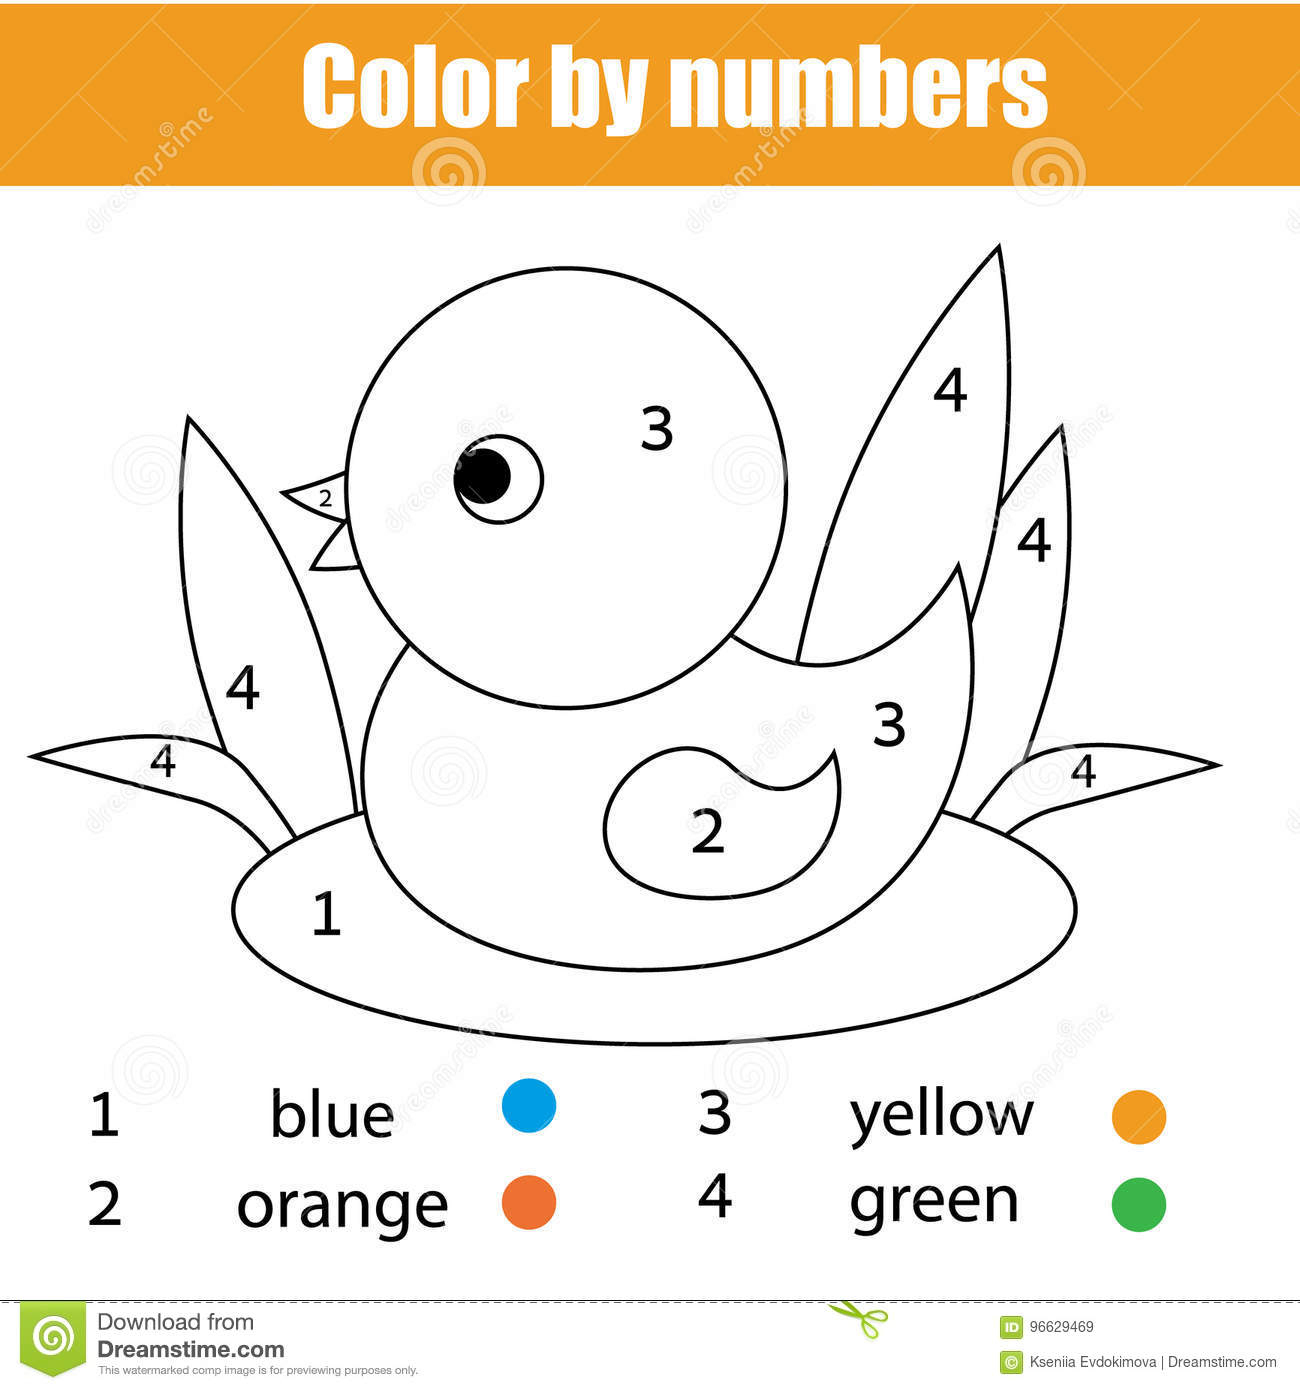 Coloring Page With Duck Bird. Colornumbers Educational Children - Toddler Learning Activities Printable Free